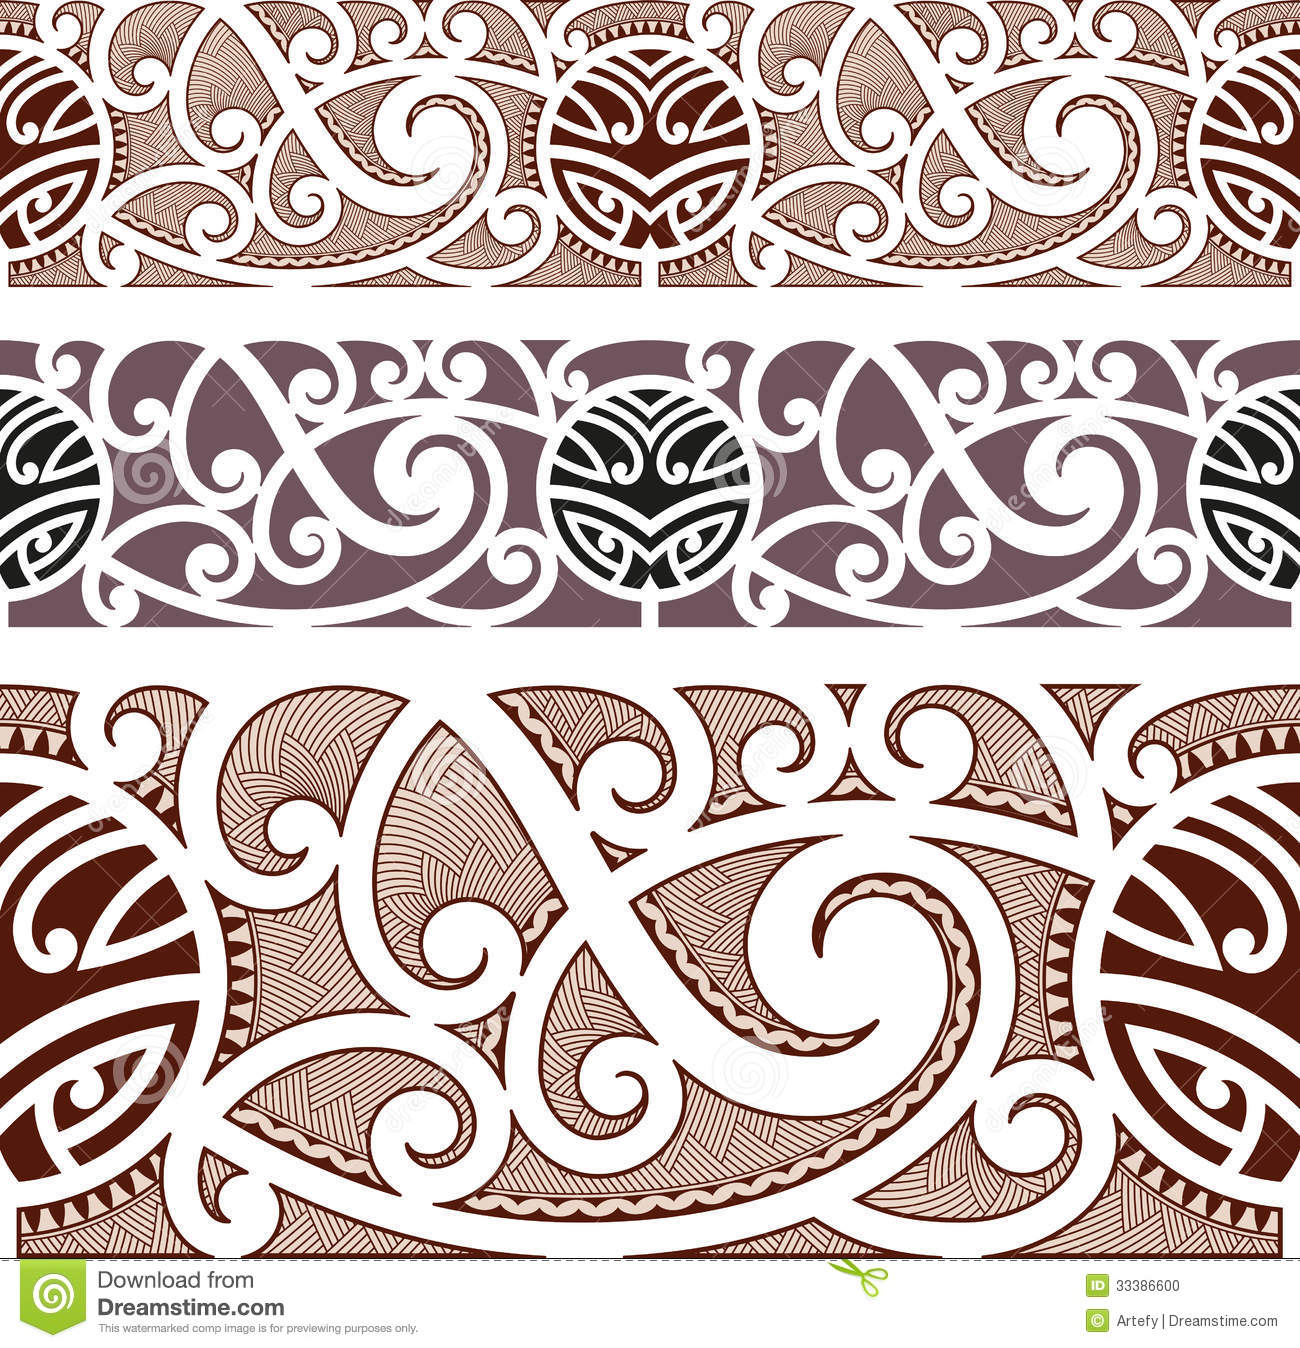 maori angeredetes nahtloses muster stockfoto bild 33386600. Black Bedroom Furniture Sets. Home Design Ideas